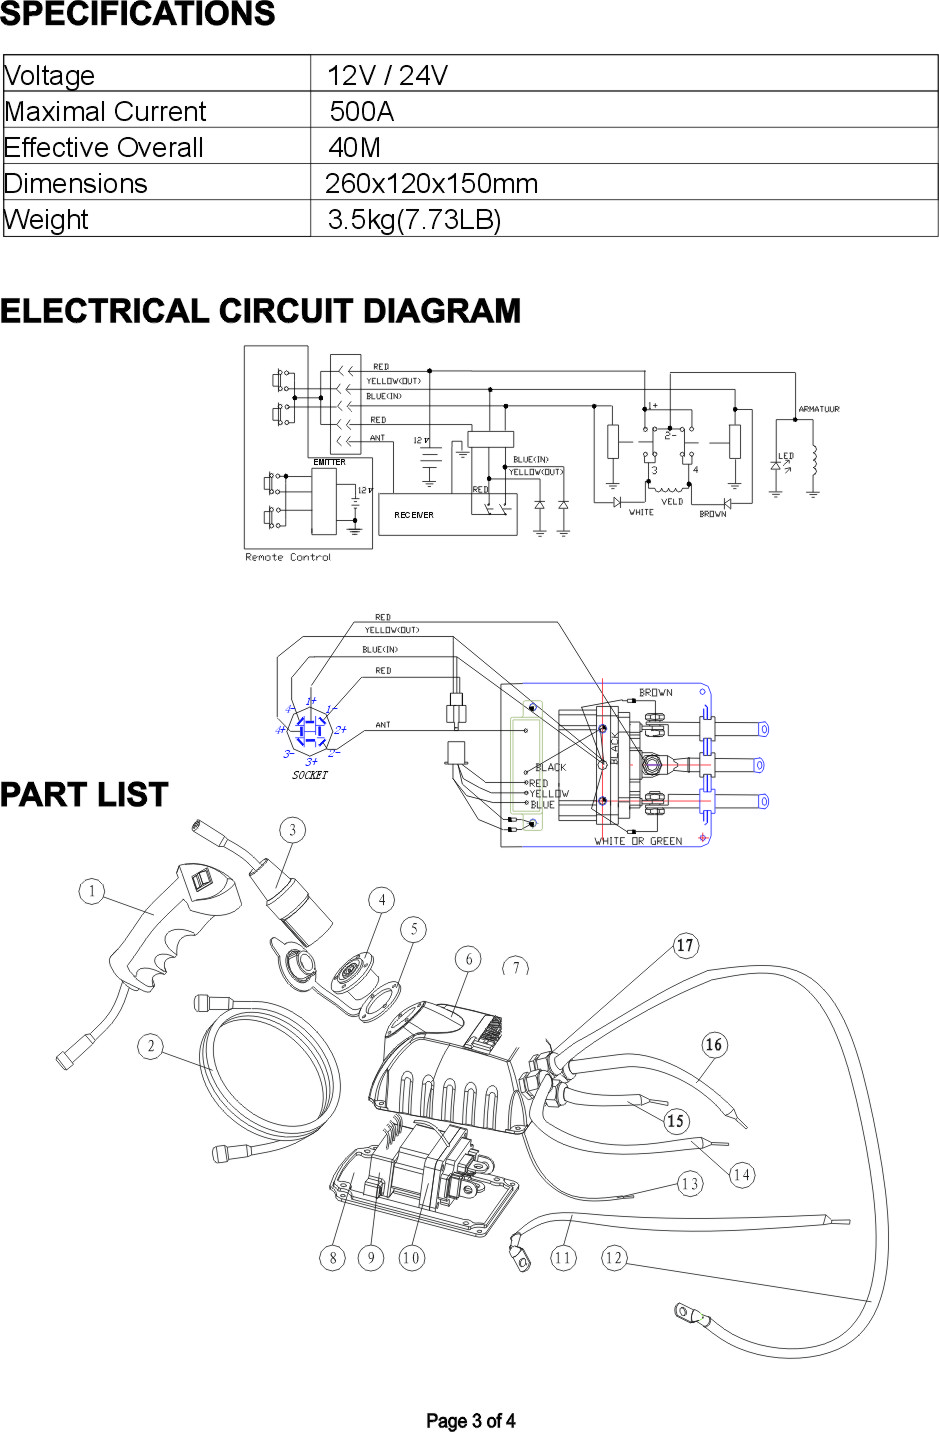 Index Of Userfiles Image Winch News T Max Wiring Diagram